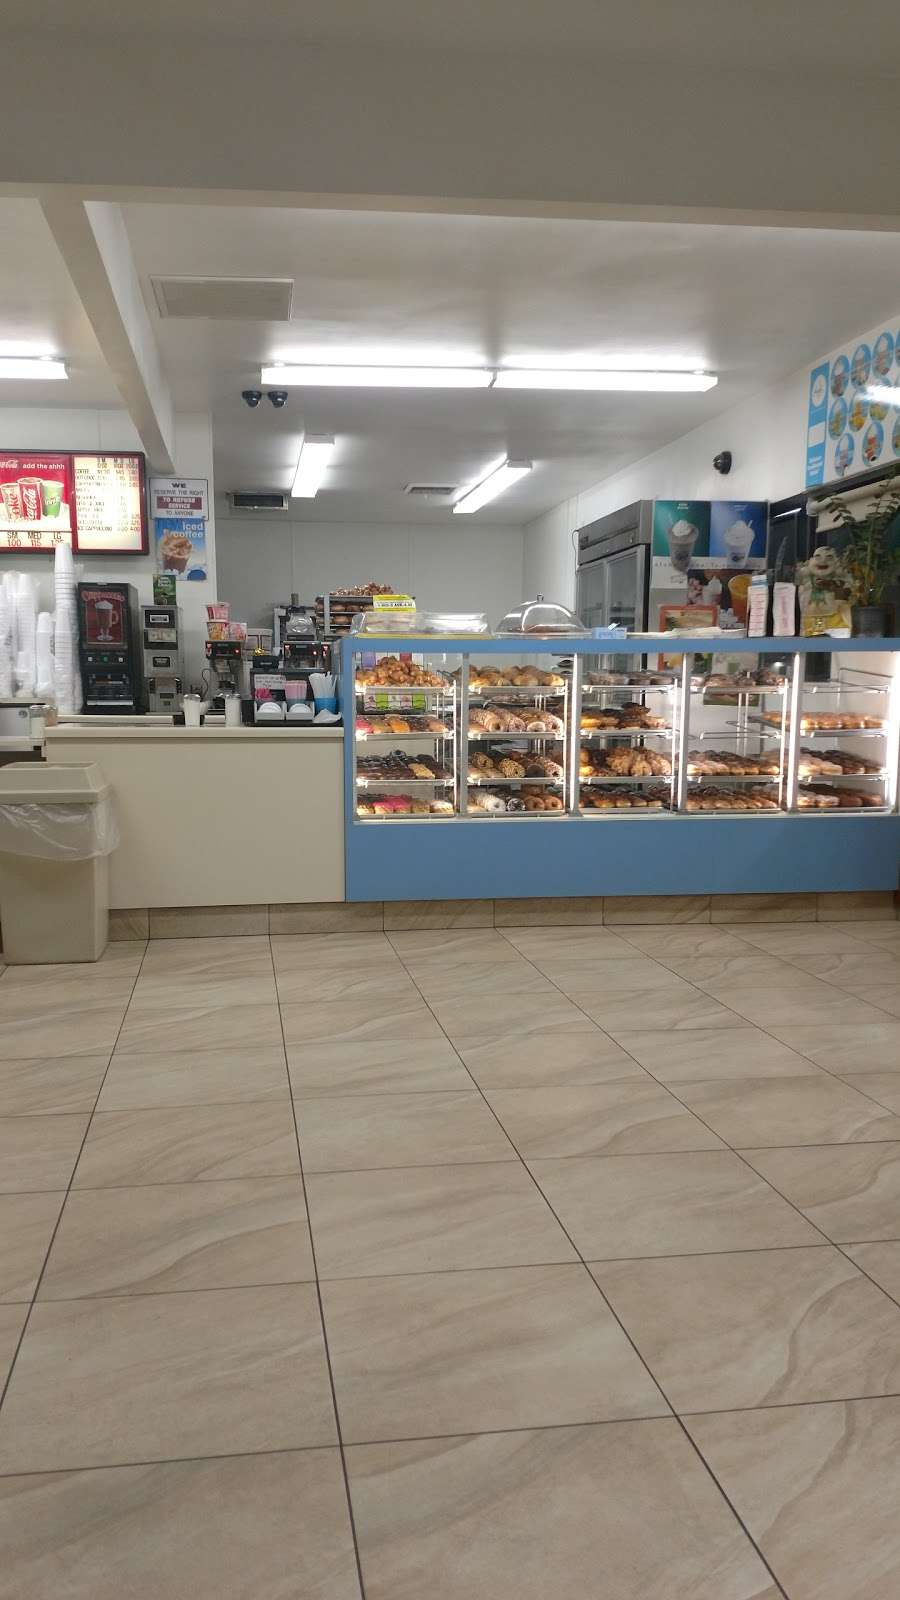 Cherris Donuts - bakery  | Photo 6 of 9 | Address: 10017 Orr and Day Rd, Santa Fe Springs, CA 90670, USA | Phone: (562) 929-1184